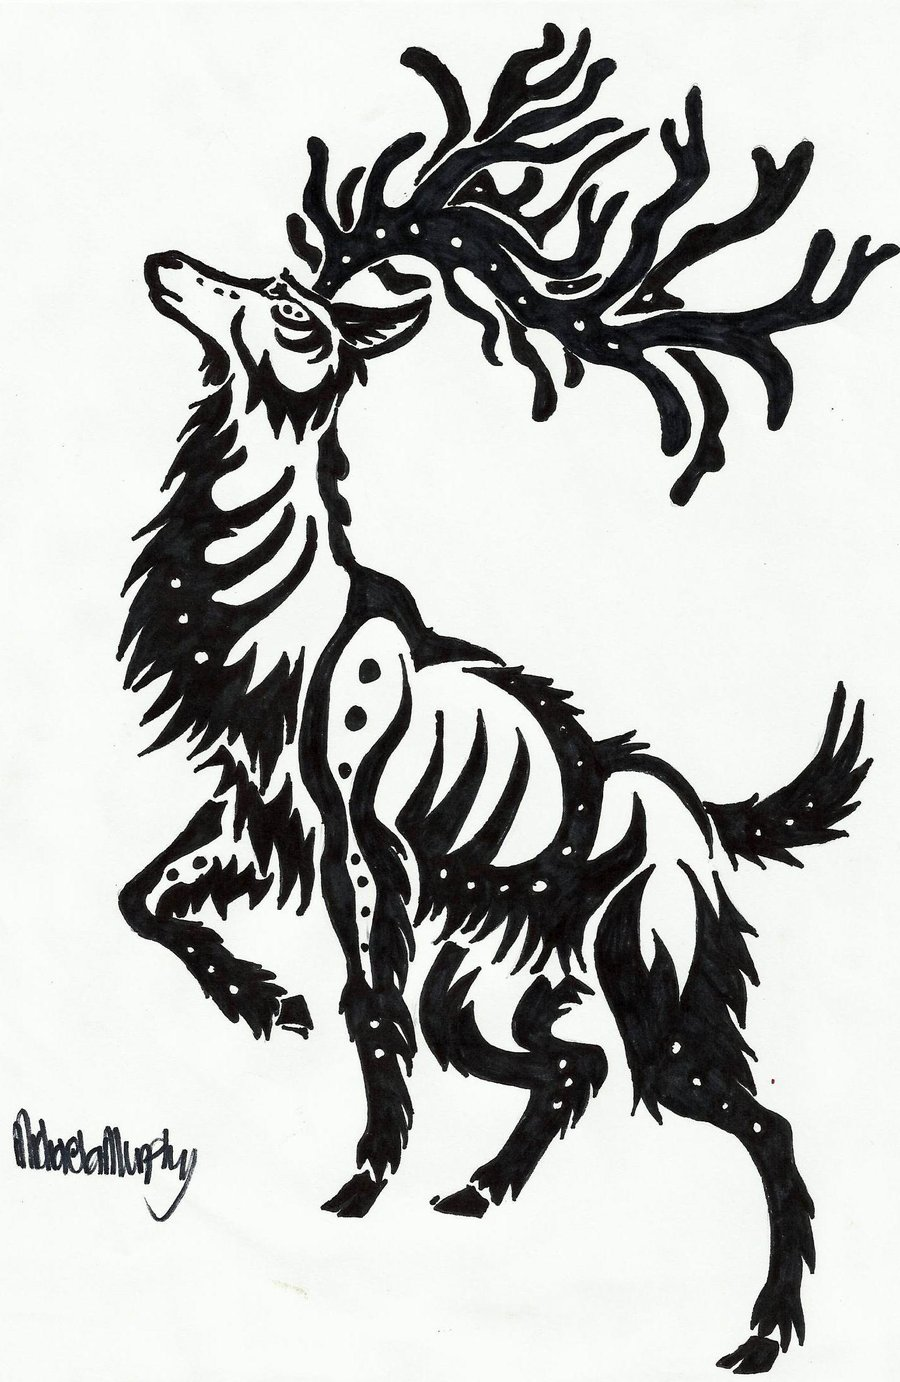 Drawn reindeer tribal Design com Tattoobite Tattoo Deer